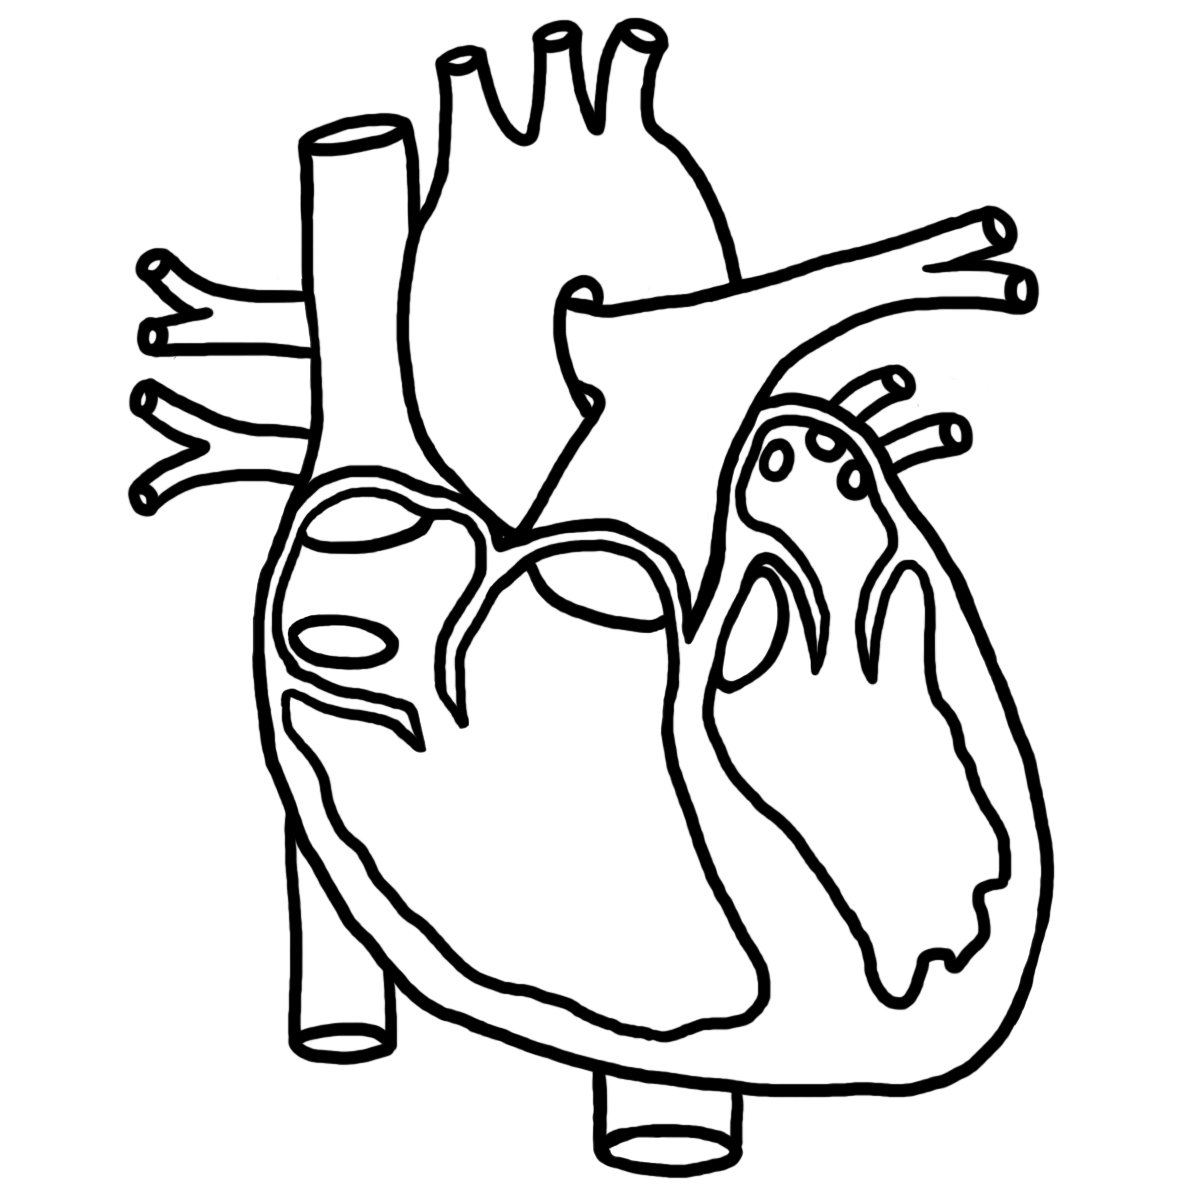 Anatomy Of The Heart Unlabeled